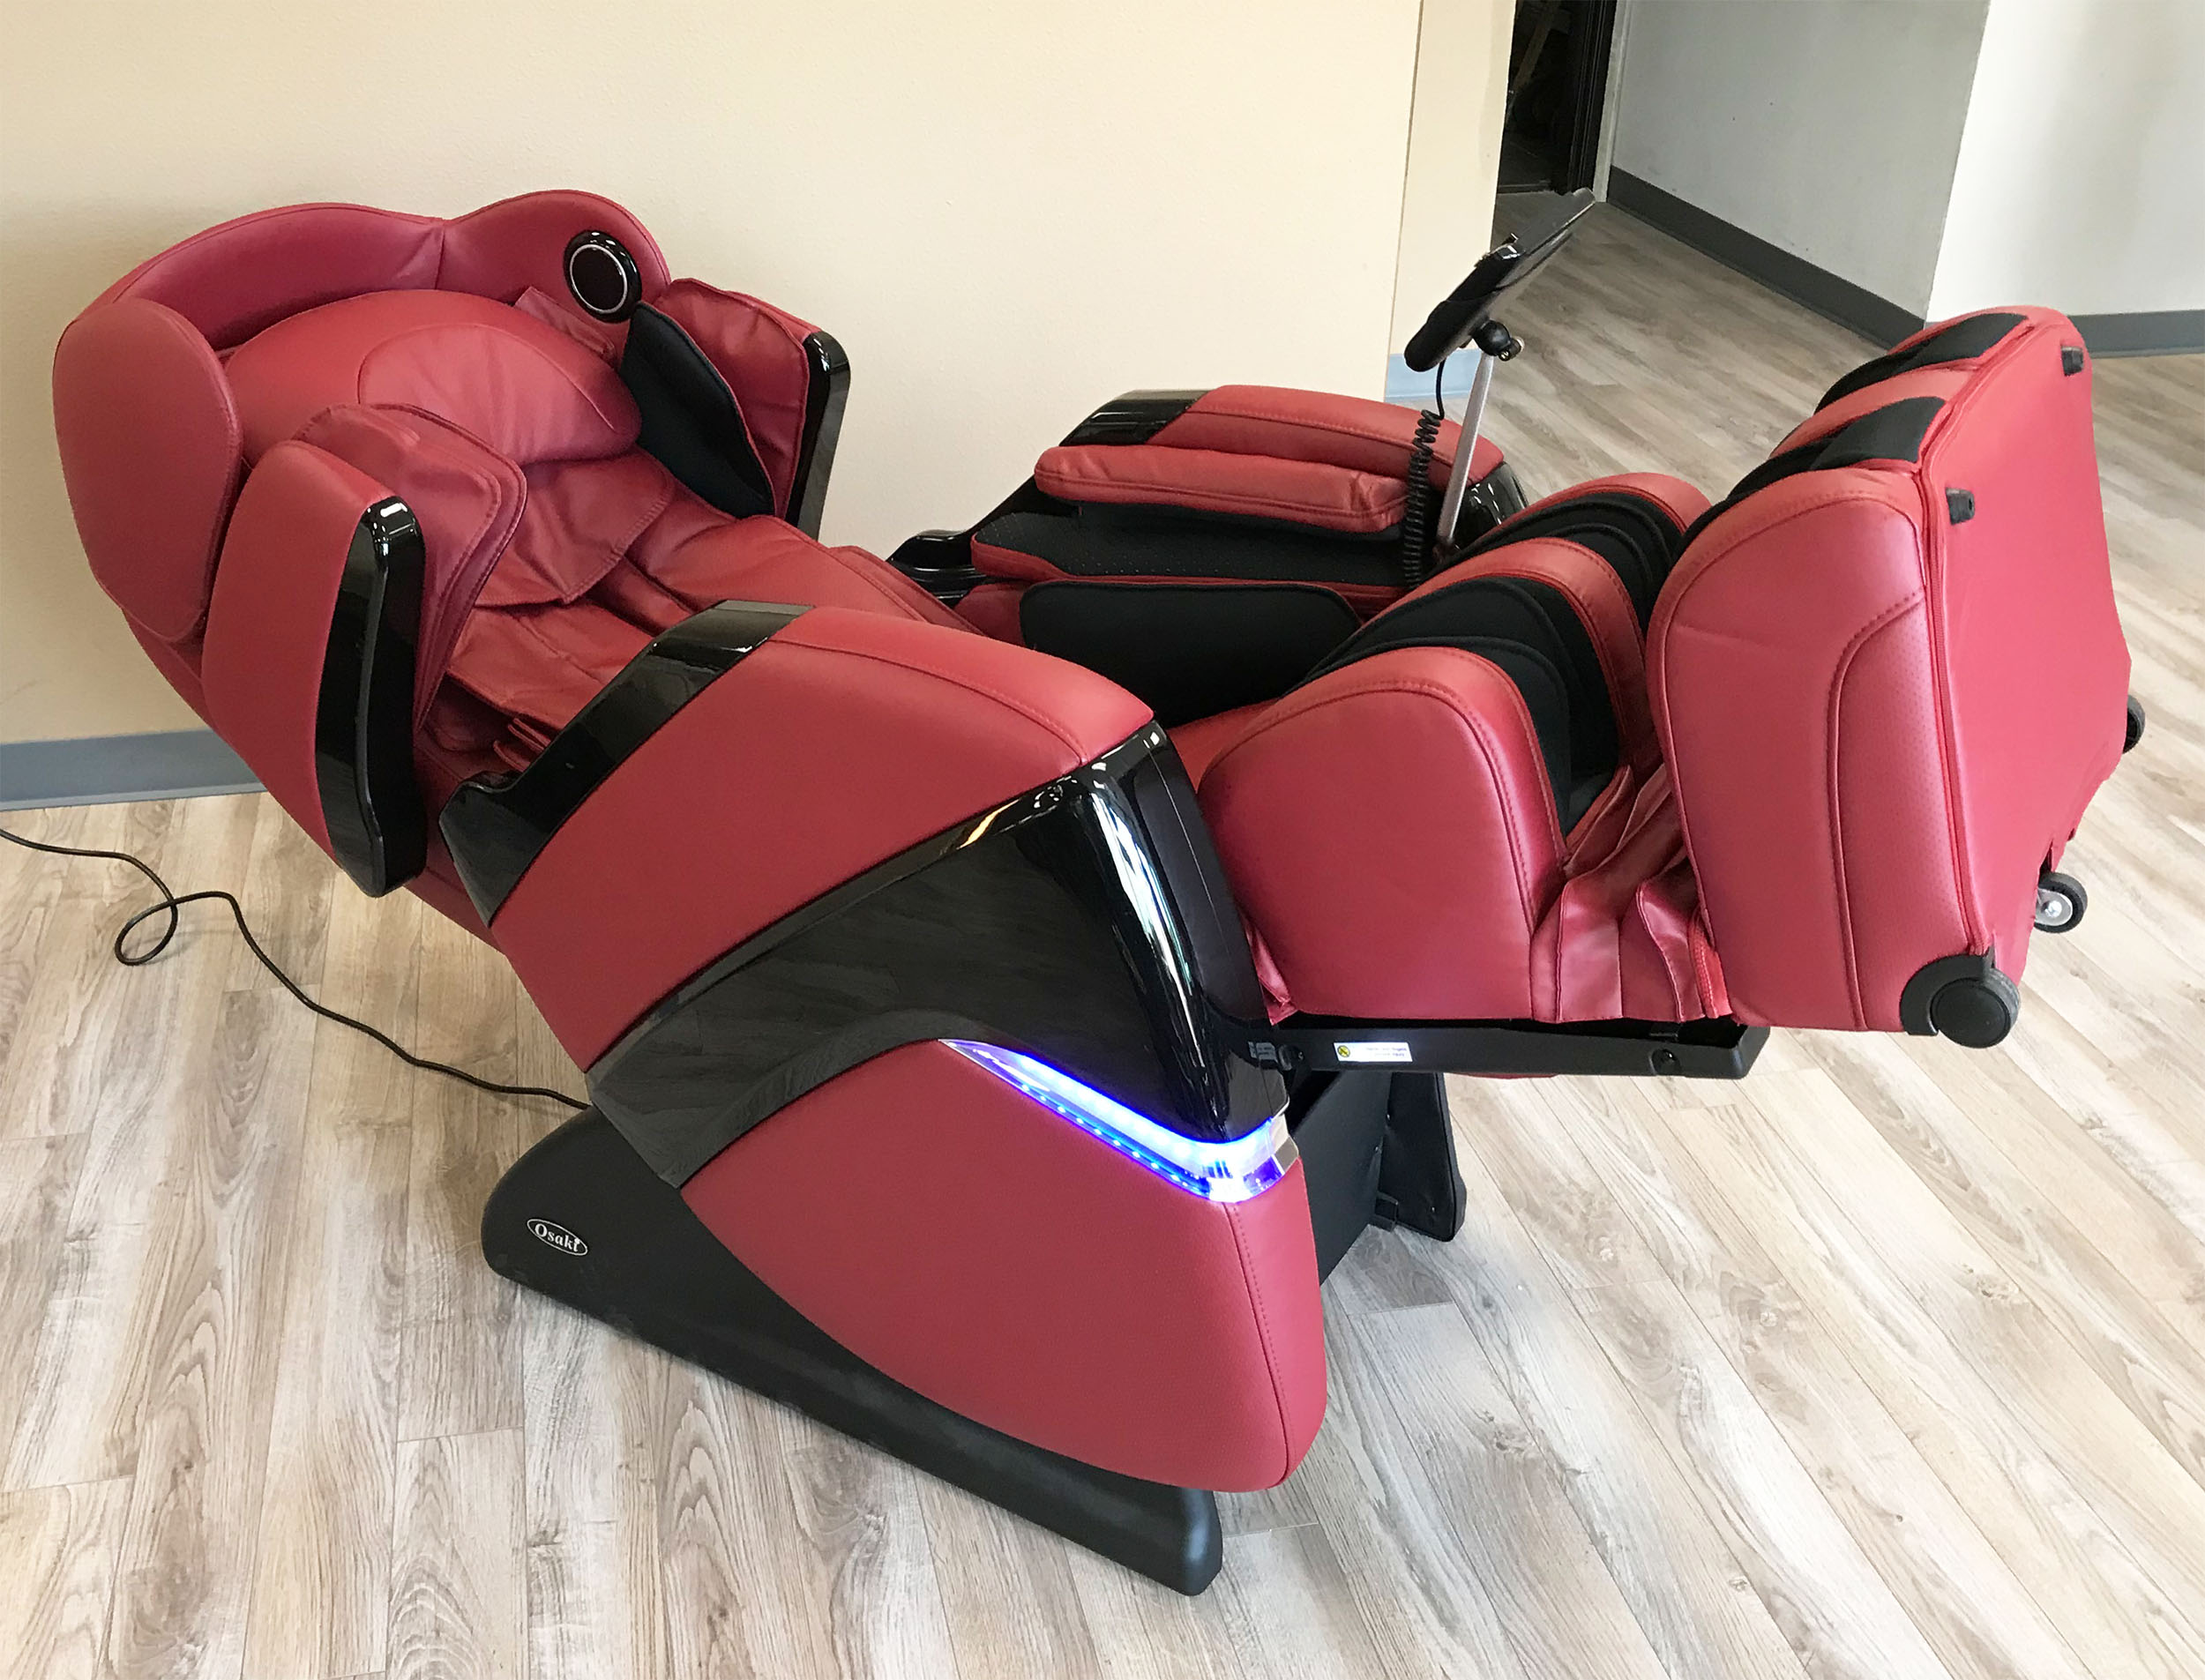 osaki os 3d cyber pro massage chair do they make covers for recliners zero gravity recliner and